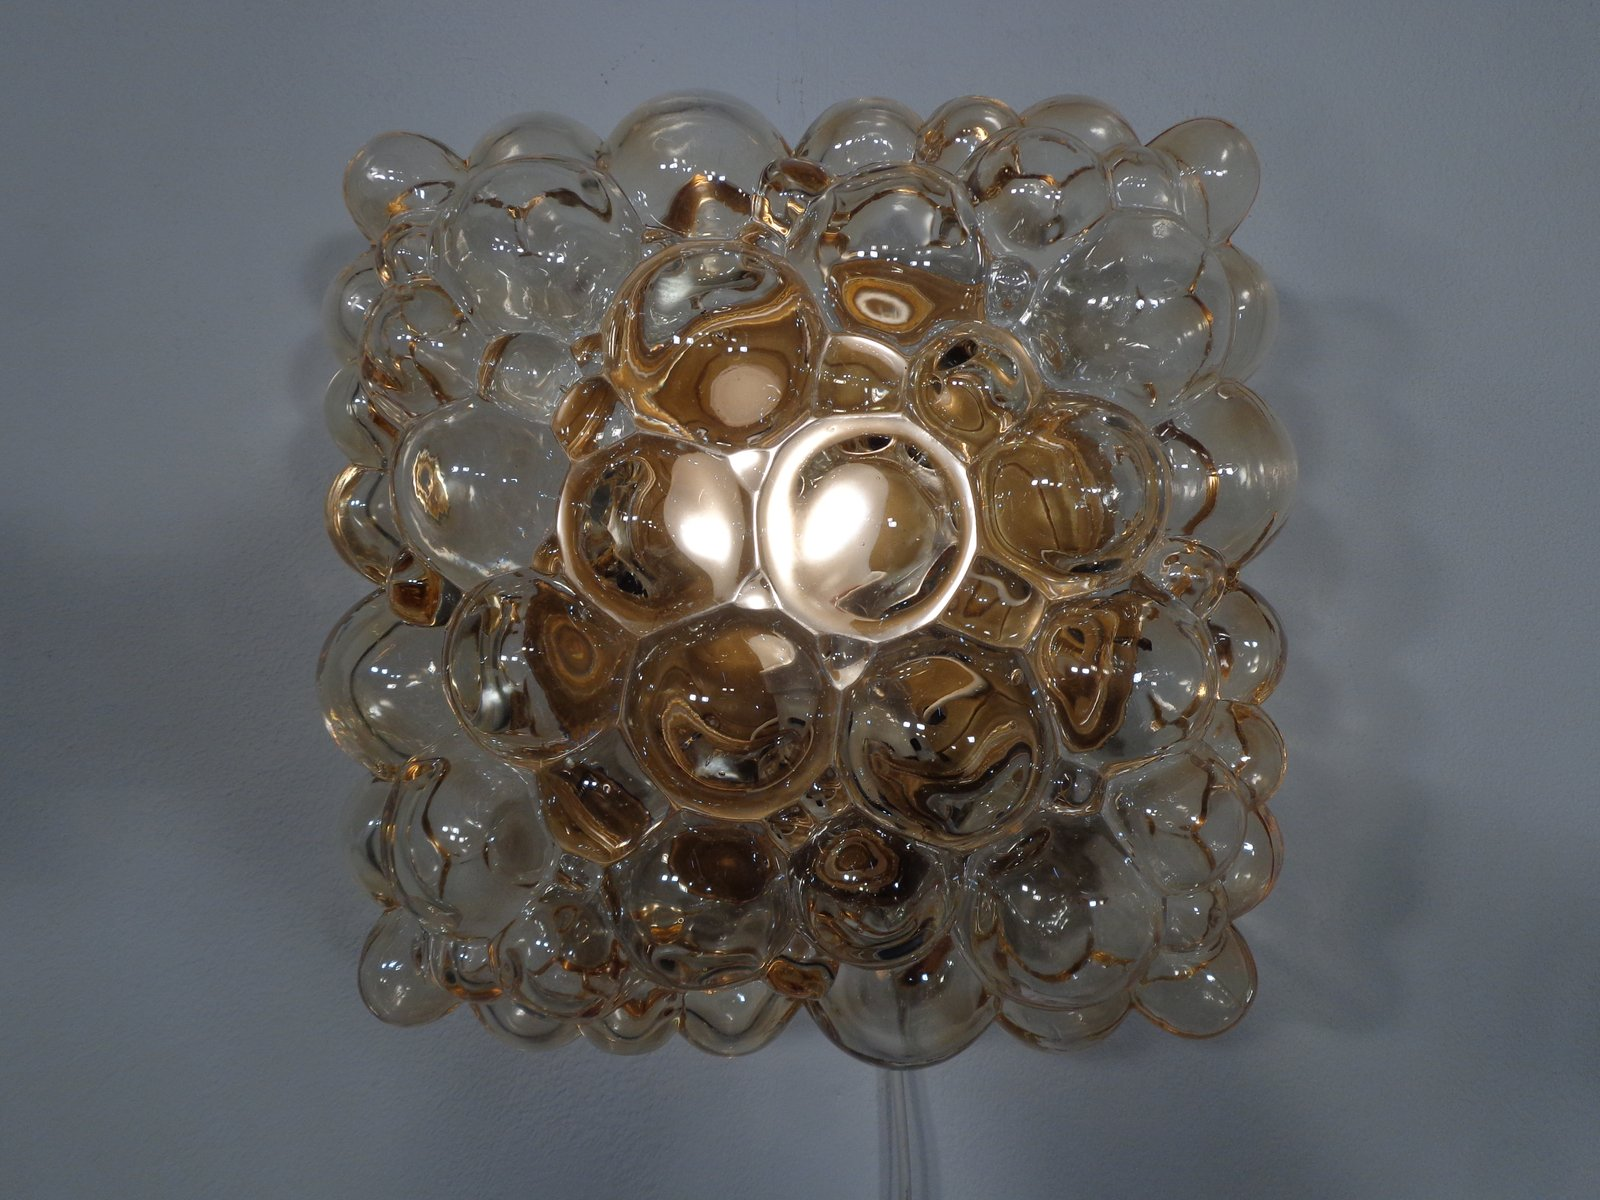 Bubble lamp by helena tynell for glashtte limburg 1960s for sale bubble lamp by helena tynell for glashtte limburg 1960s for sale at pamono arubaitofo Image collections